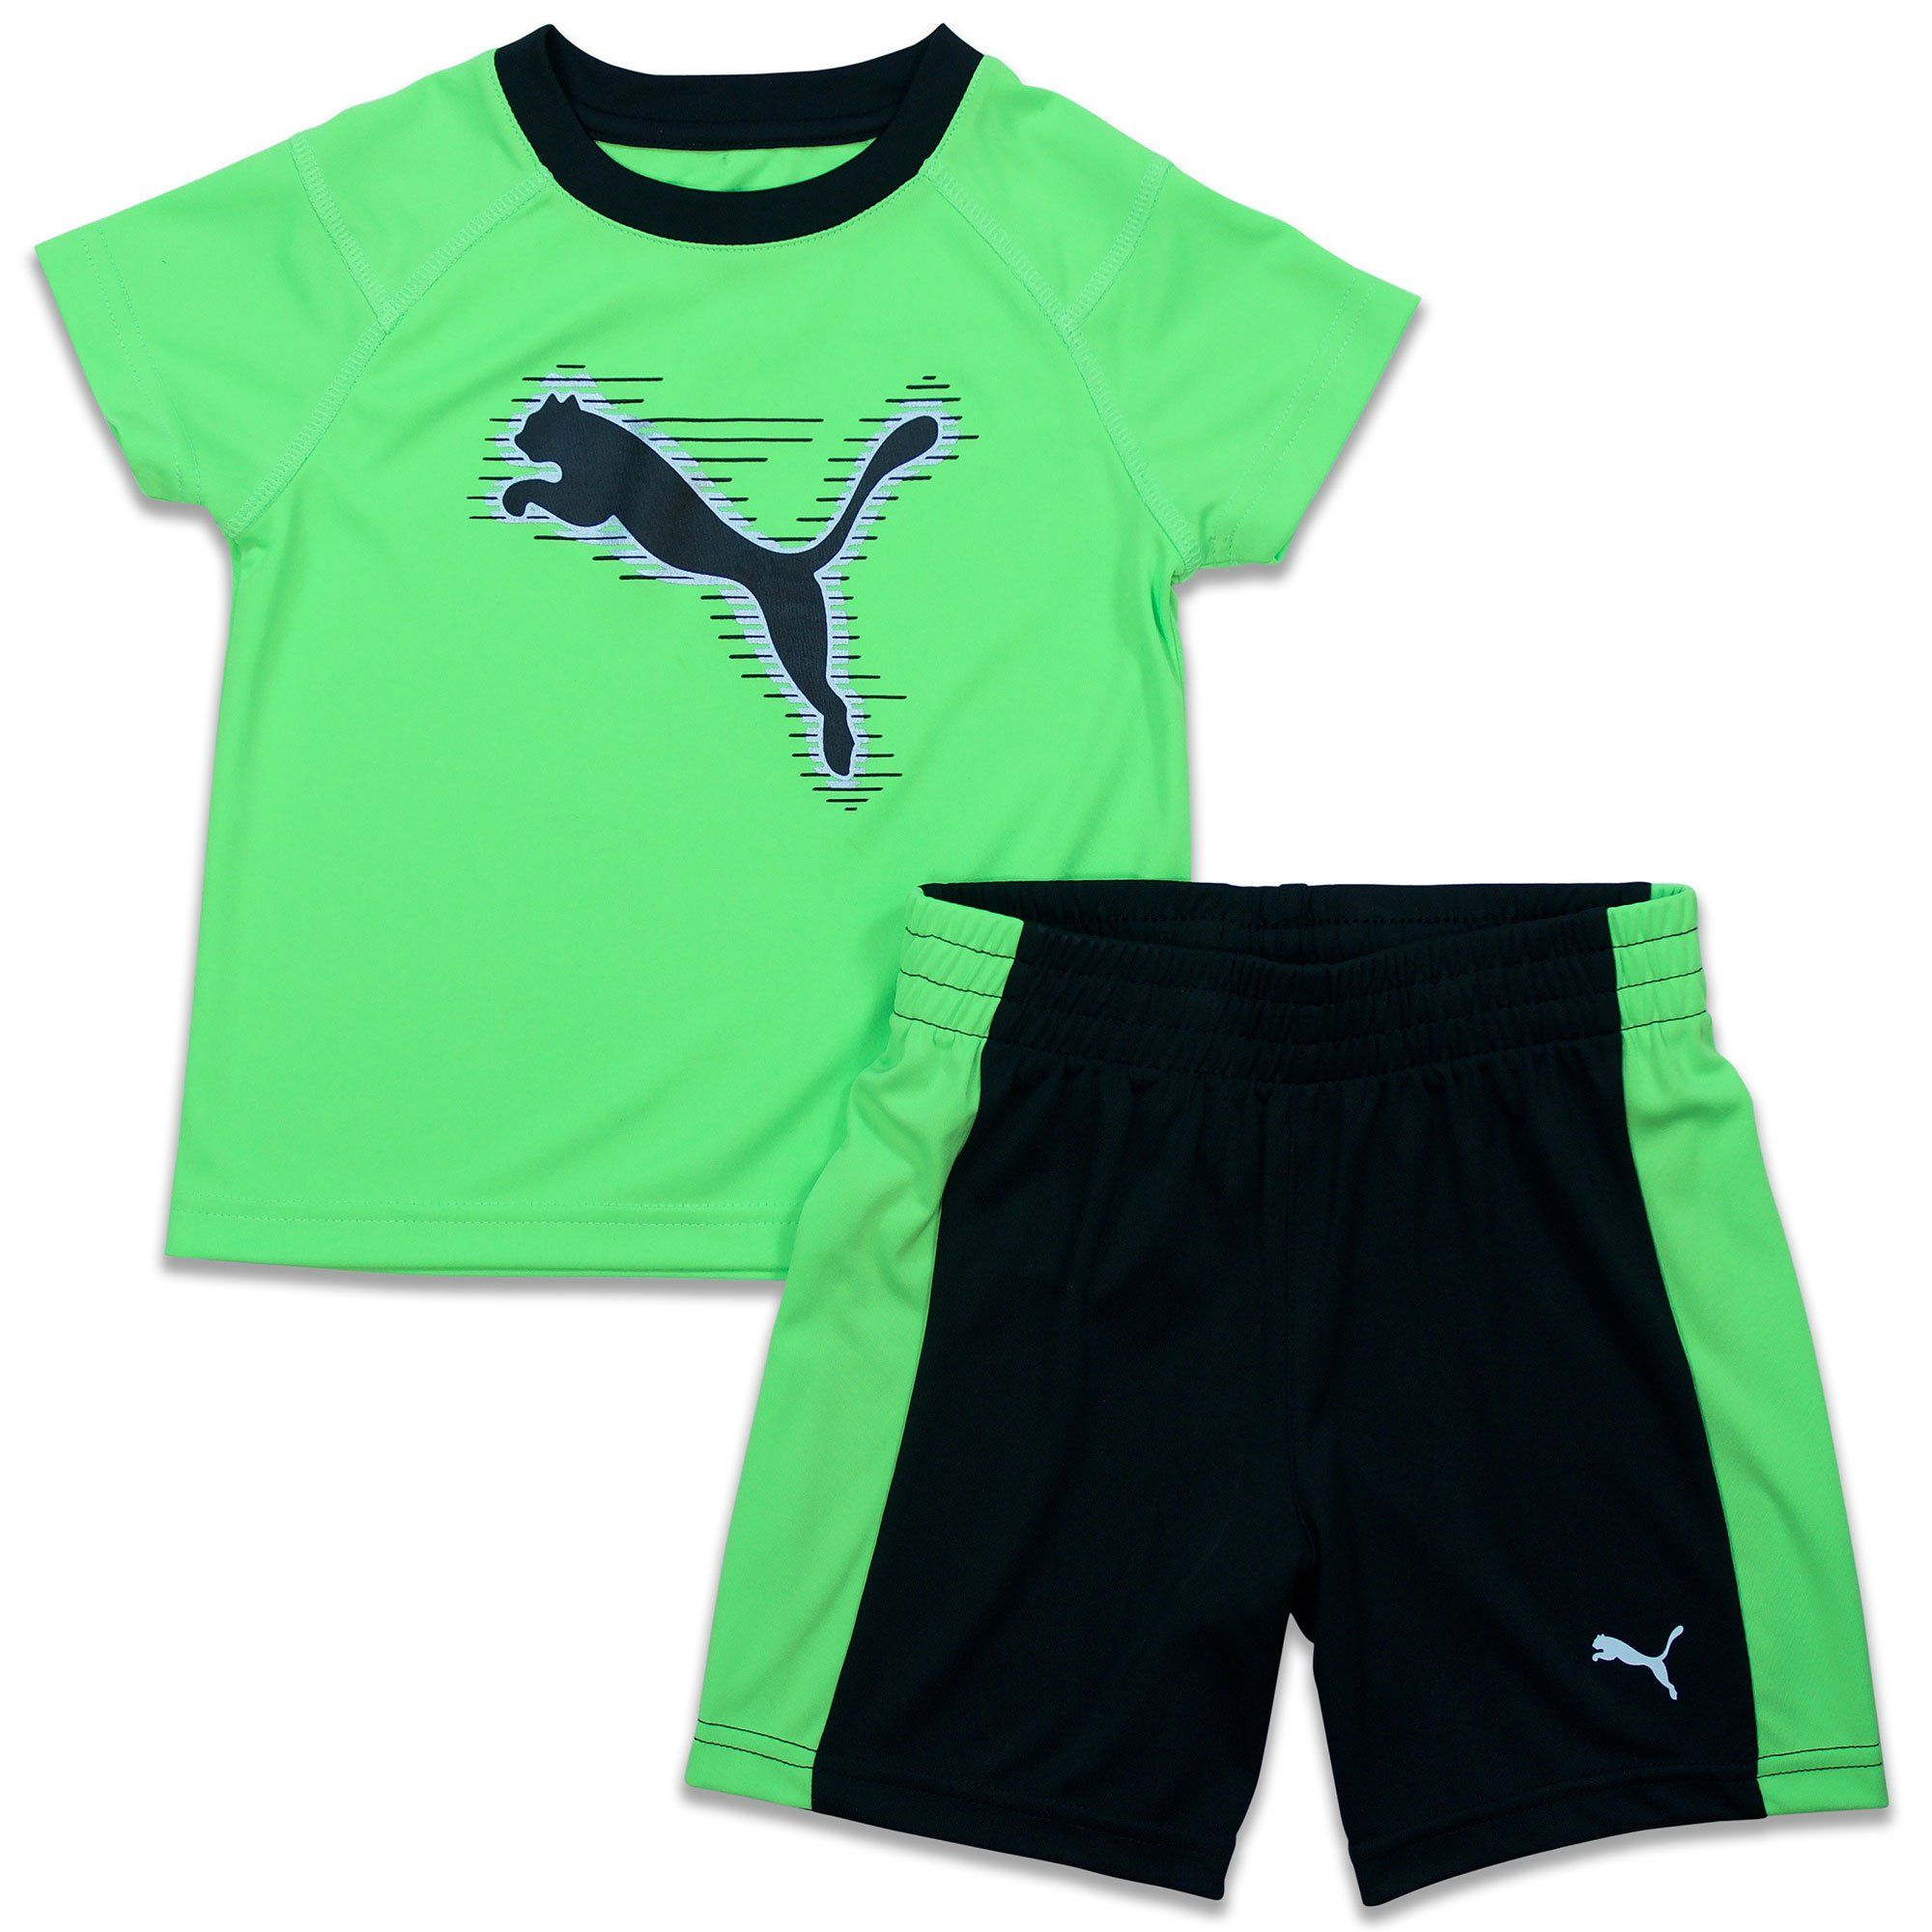 Puma Cat 2 Piece Short Set - Boys Athletic Shorts and Active Tee Outfit Green 4. Puma Boys 2 ...